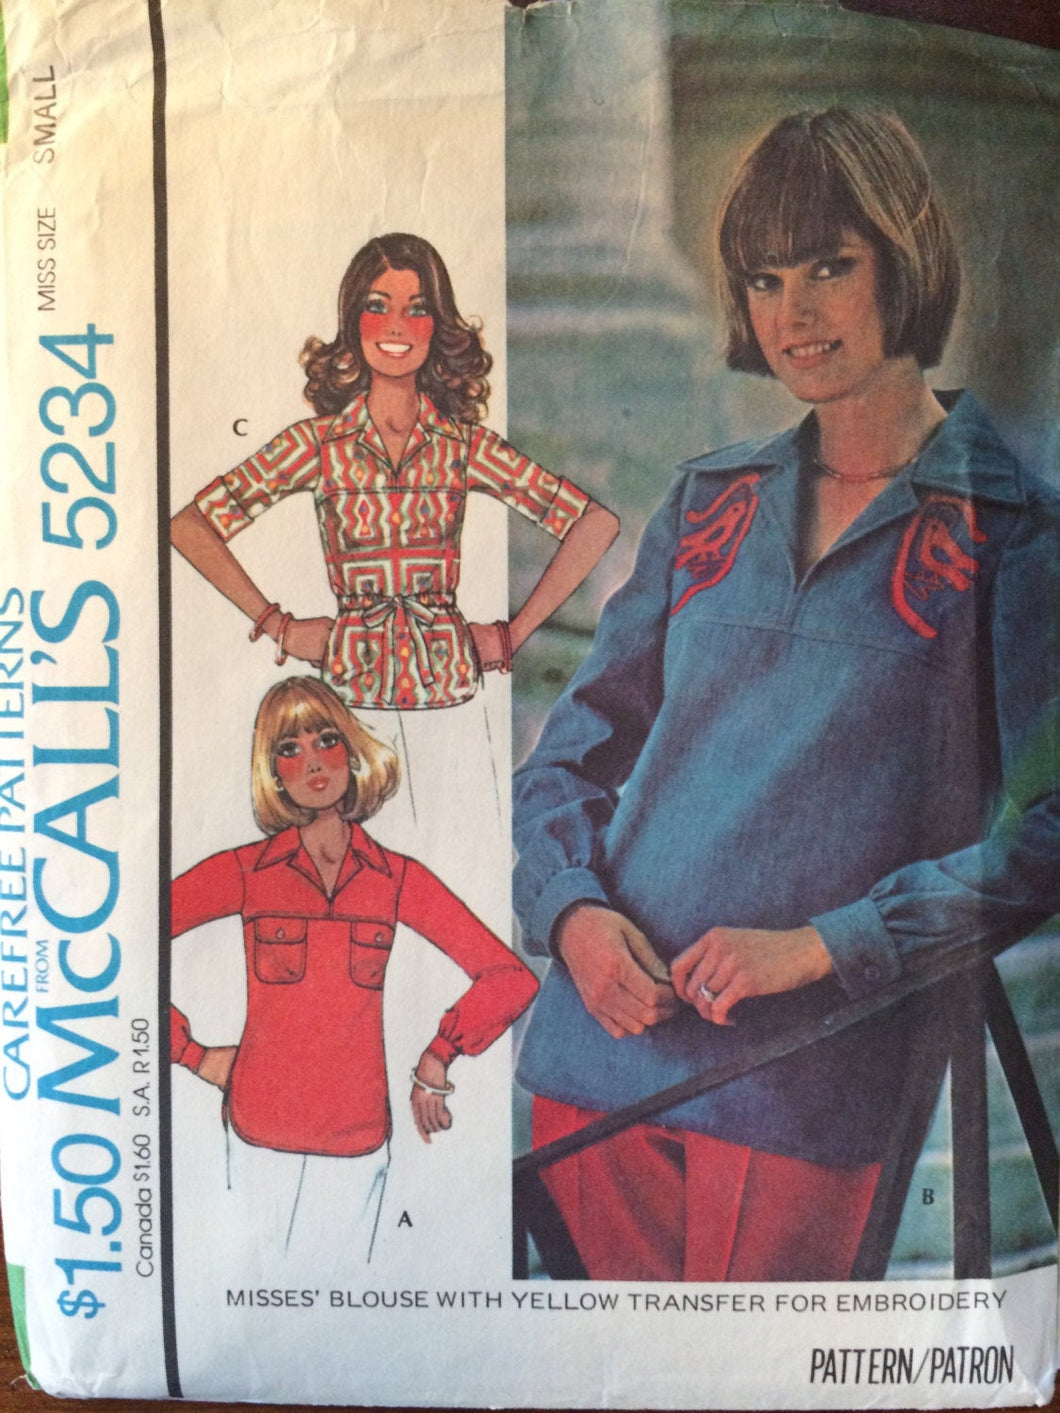 Blouse Pattern / Vintage Sewing Pattern / Embroidery Transfer / McCall's 5234 / Small Bust 32.5-34 / 1970s Pattern / Blouse Sewing